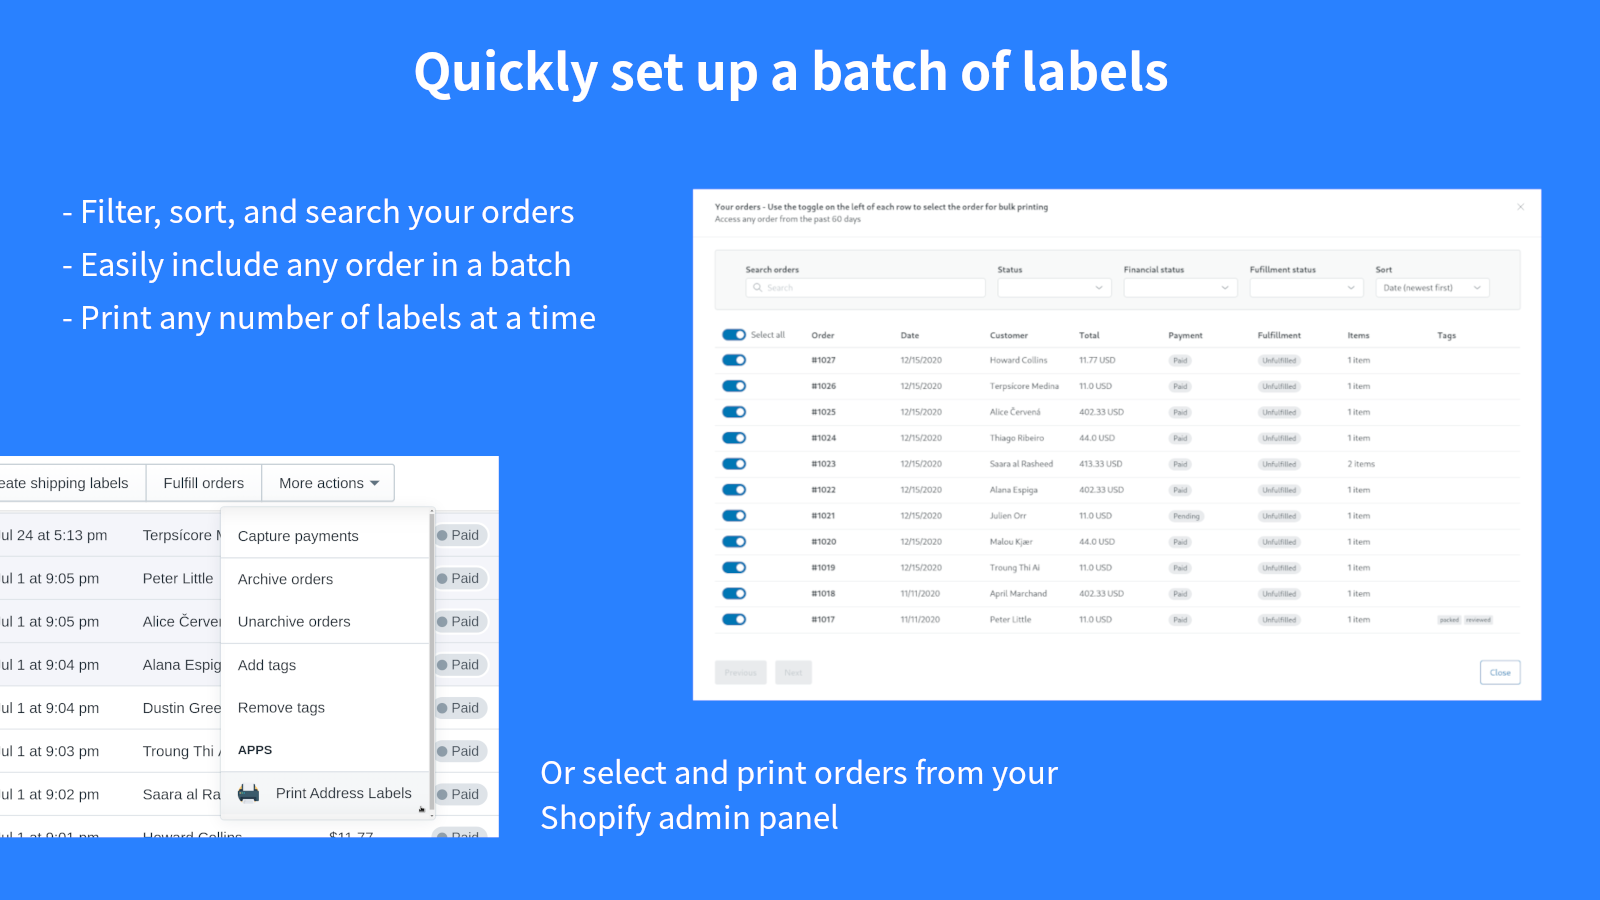 Quickly set up a batch of labels